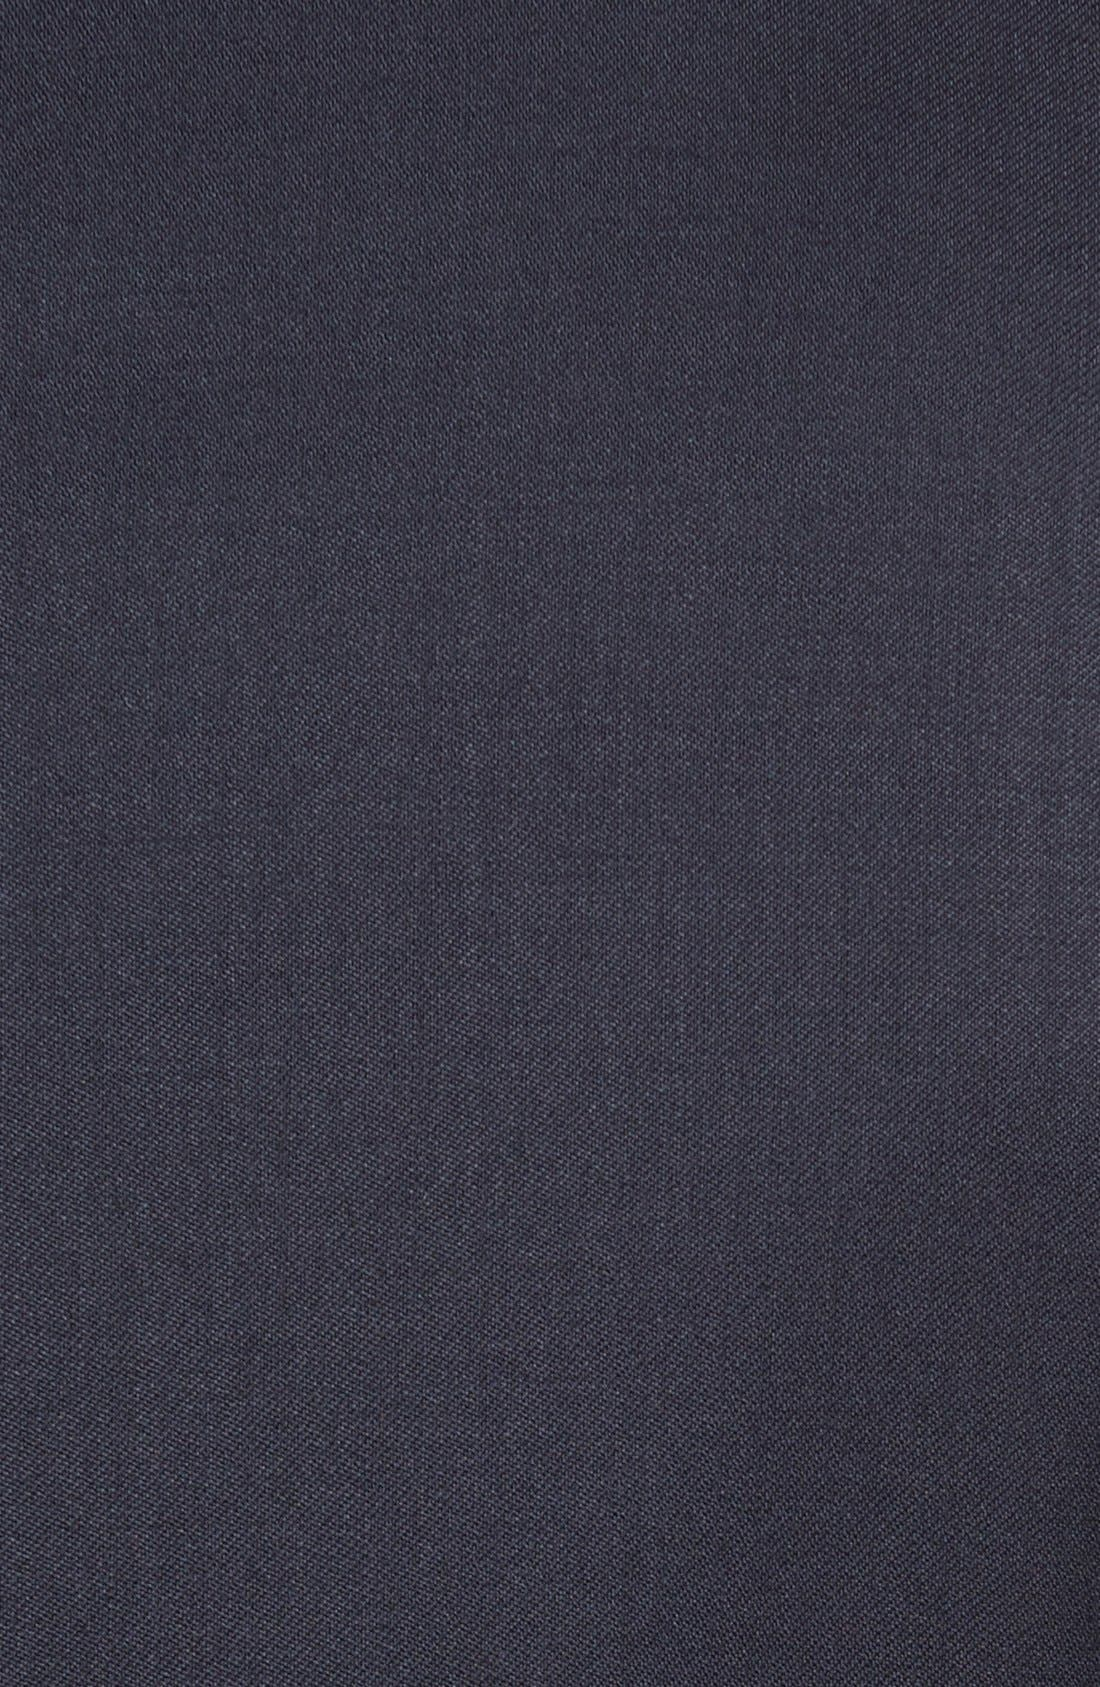 Classic Fit Solid Wool Suit,                             Alternate thumbnail 8, color,                             NAVY